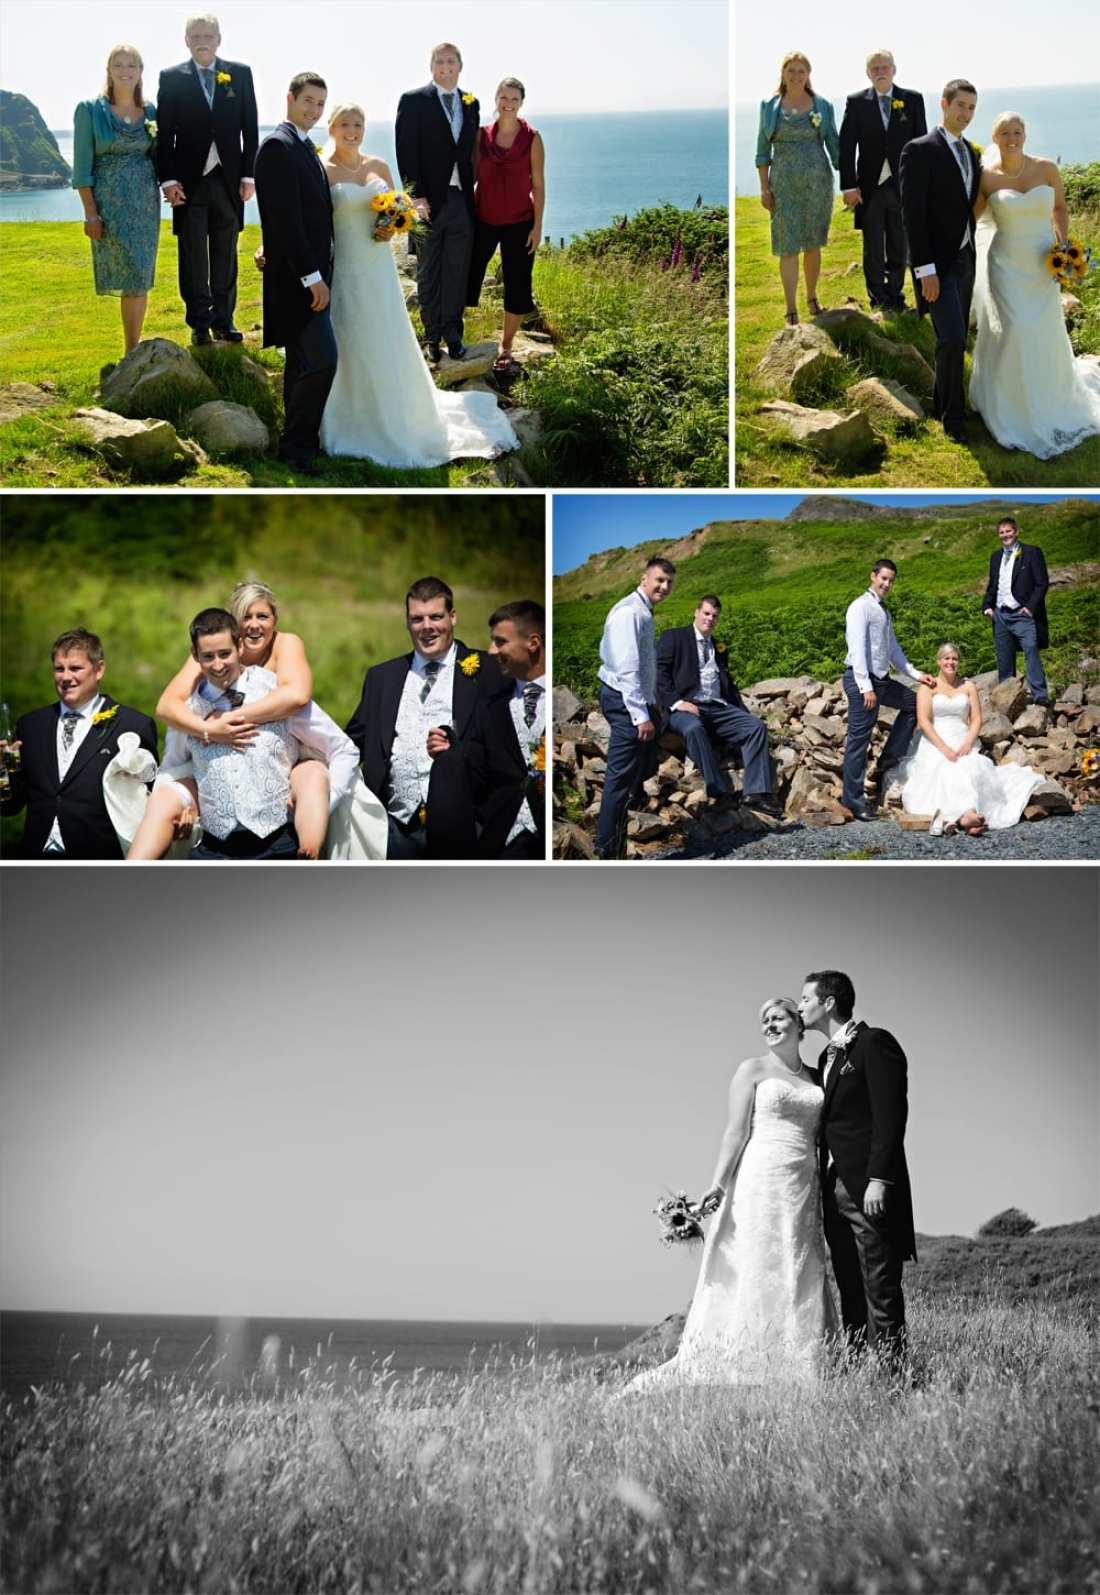 North Wales wedding - Family and Wedding Party